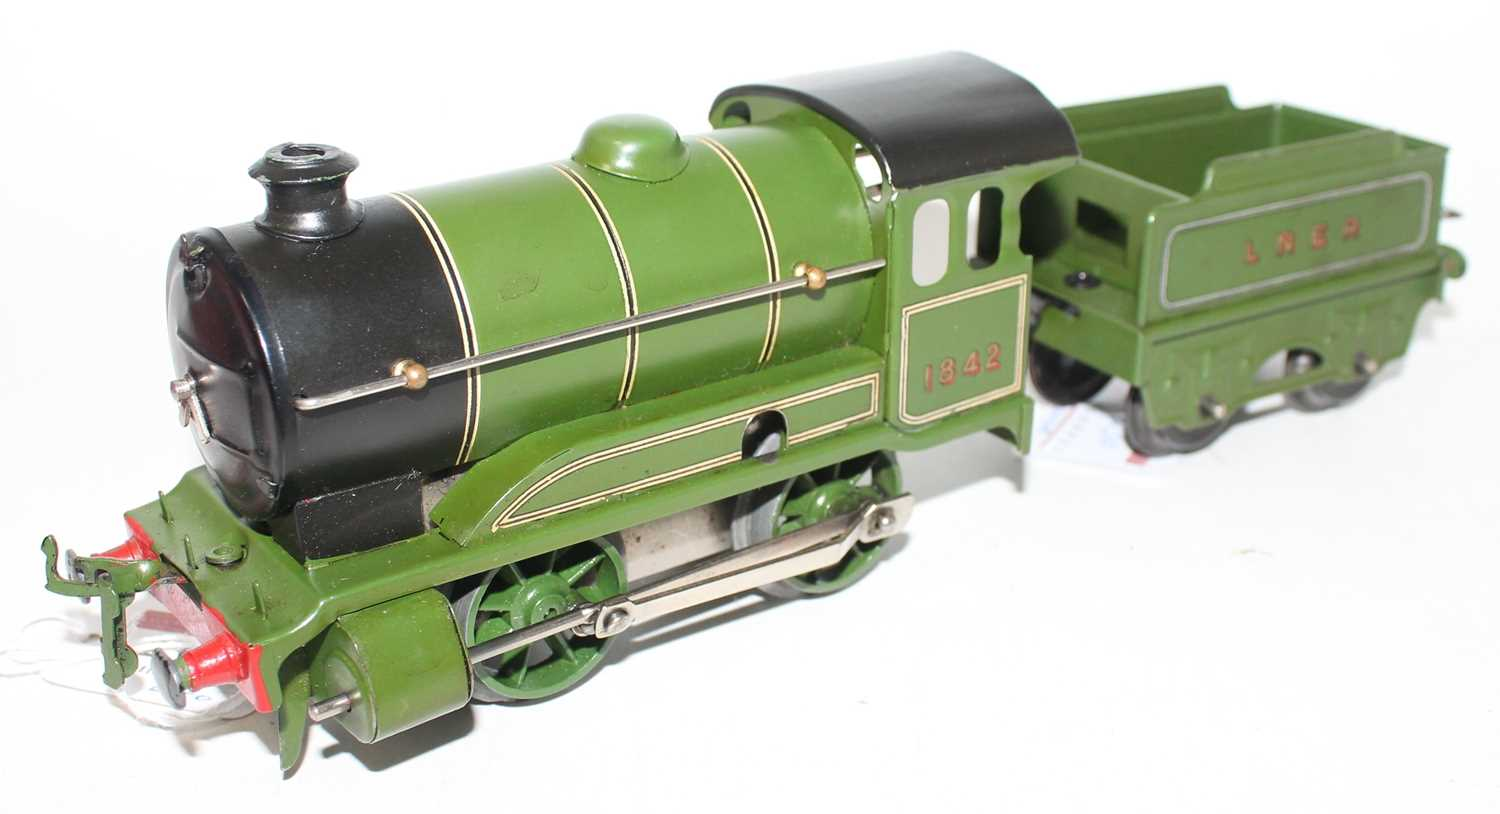 Hornby 1948-54 No.501 clockwork Loco and tender, LNER Green No.1842, R/H cabside gives appearance of